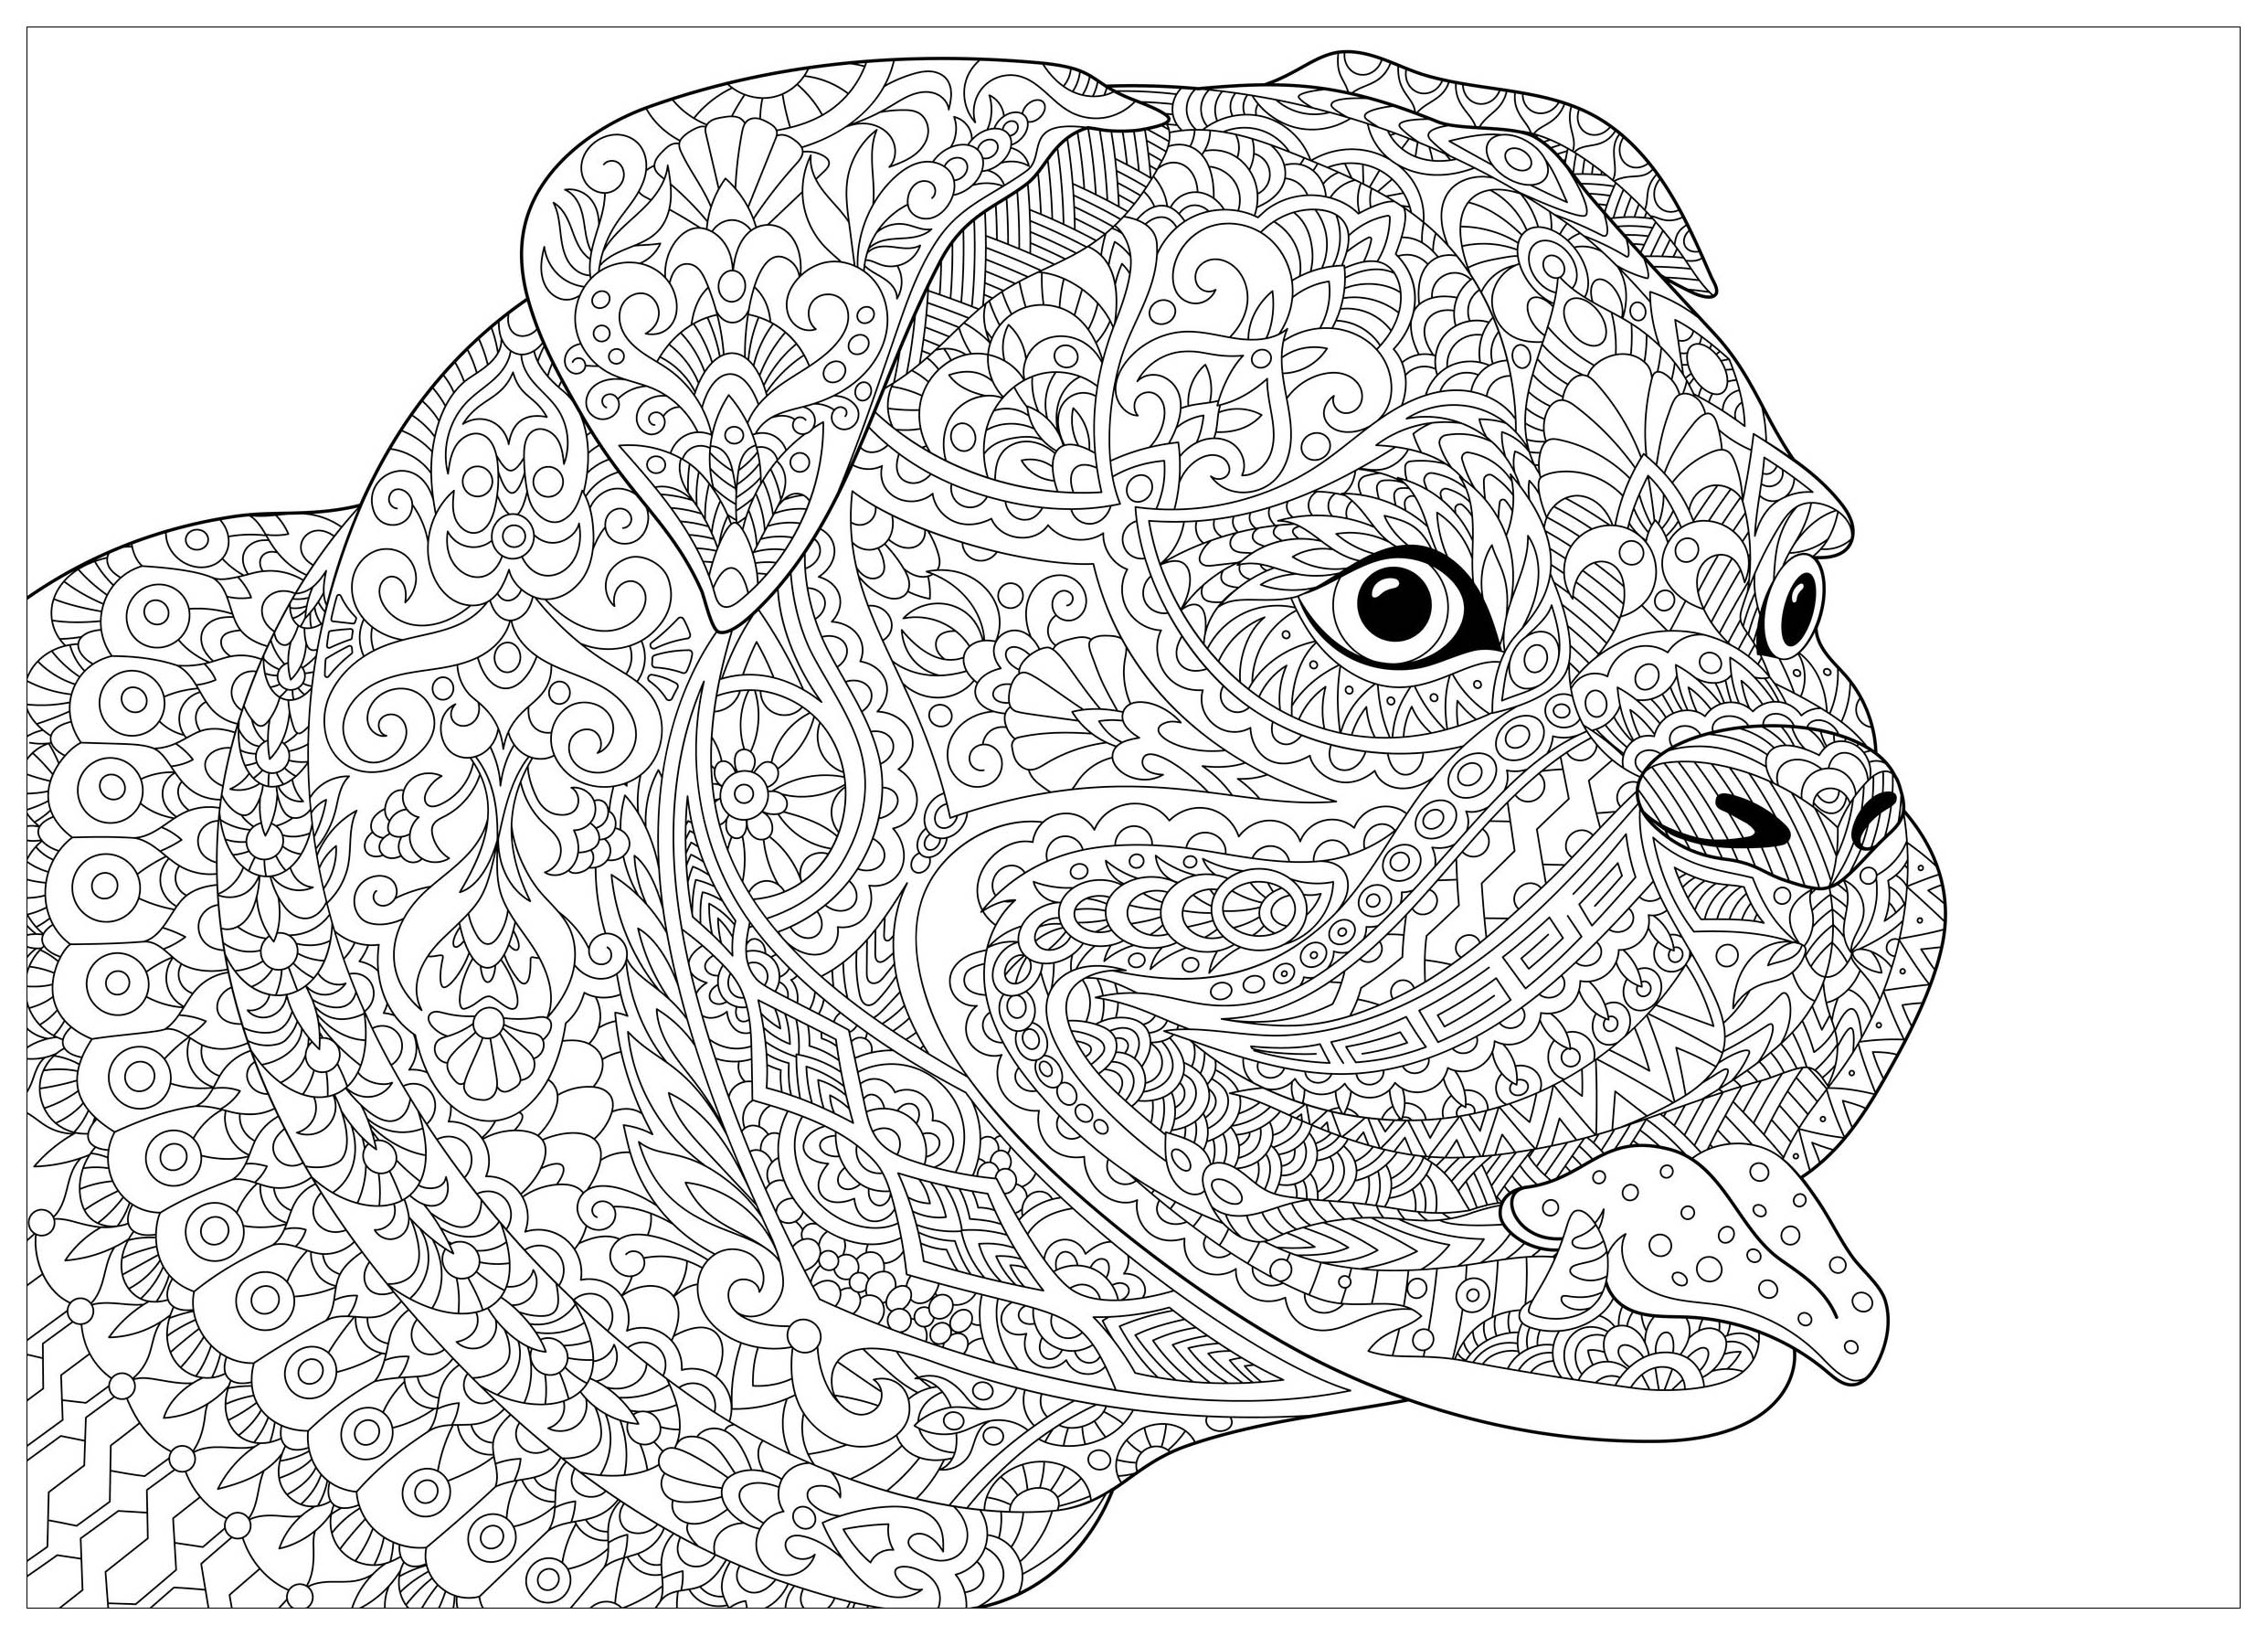 bulldog coloring page dog french bulldog dogs adult coloring pages coloring page bulldog